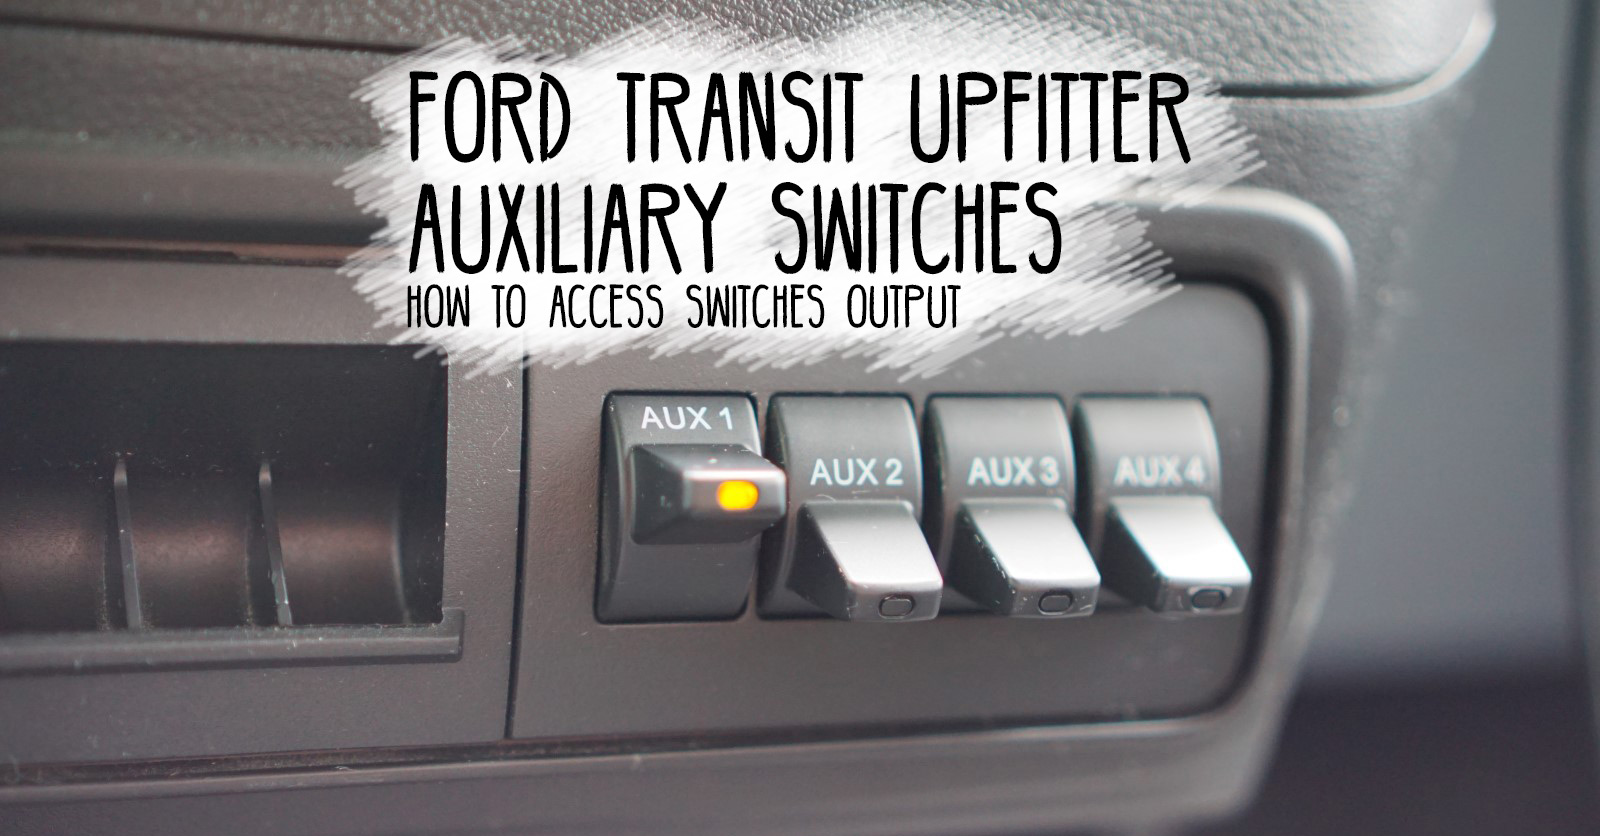 hight resolution of ford transit upfitter auxiliary switches faroutride rh faroutride com 2015 ford transit door lock wiring diagram 2015 ford transit aux power wiring diagram